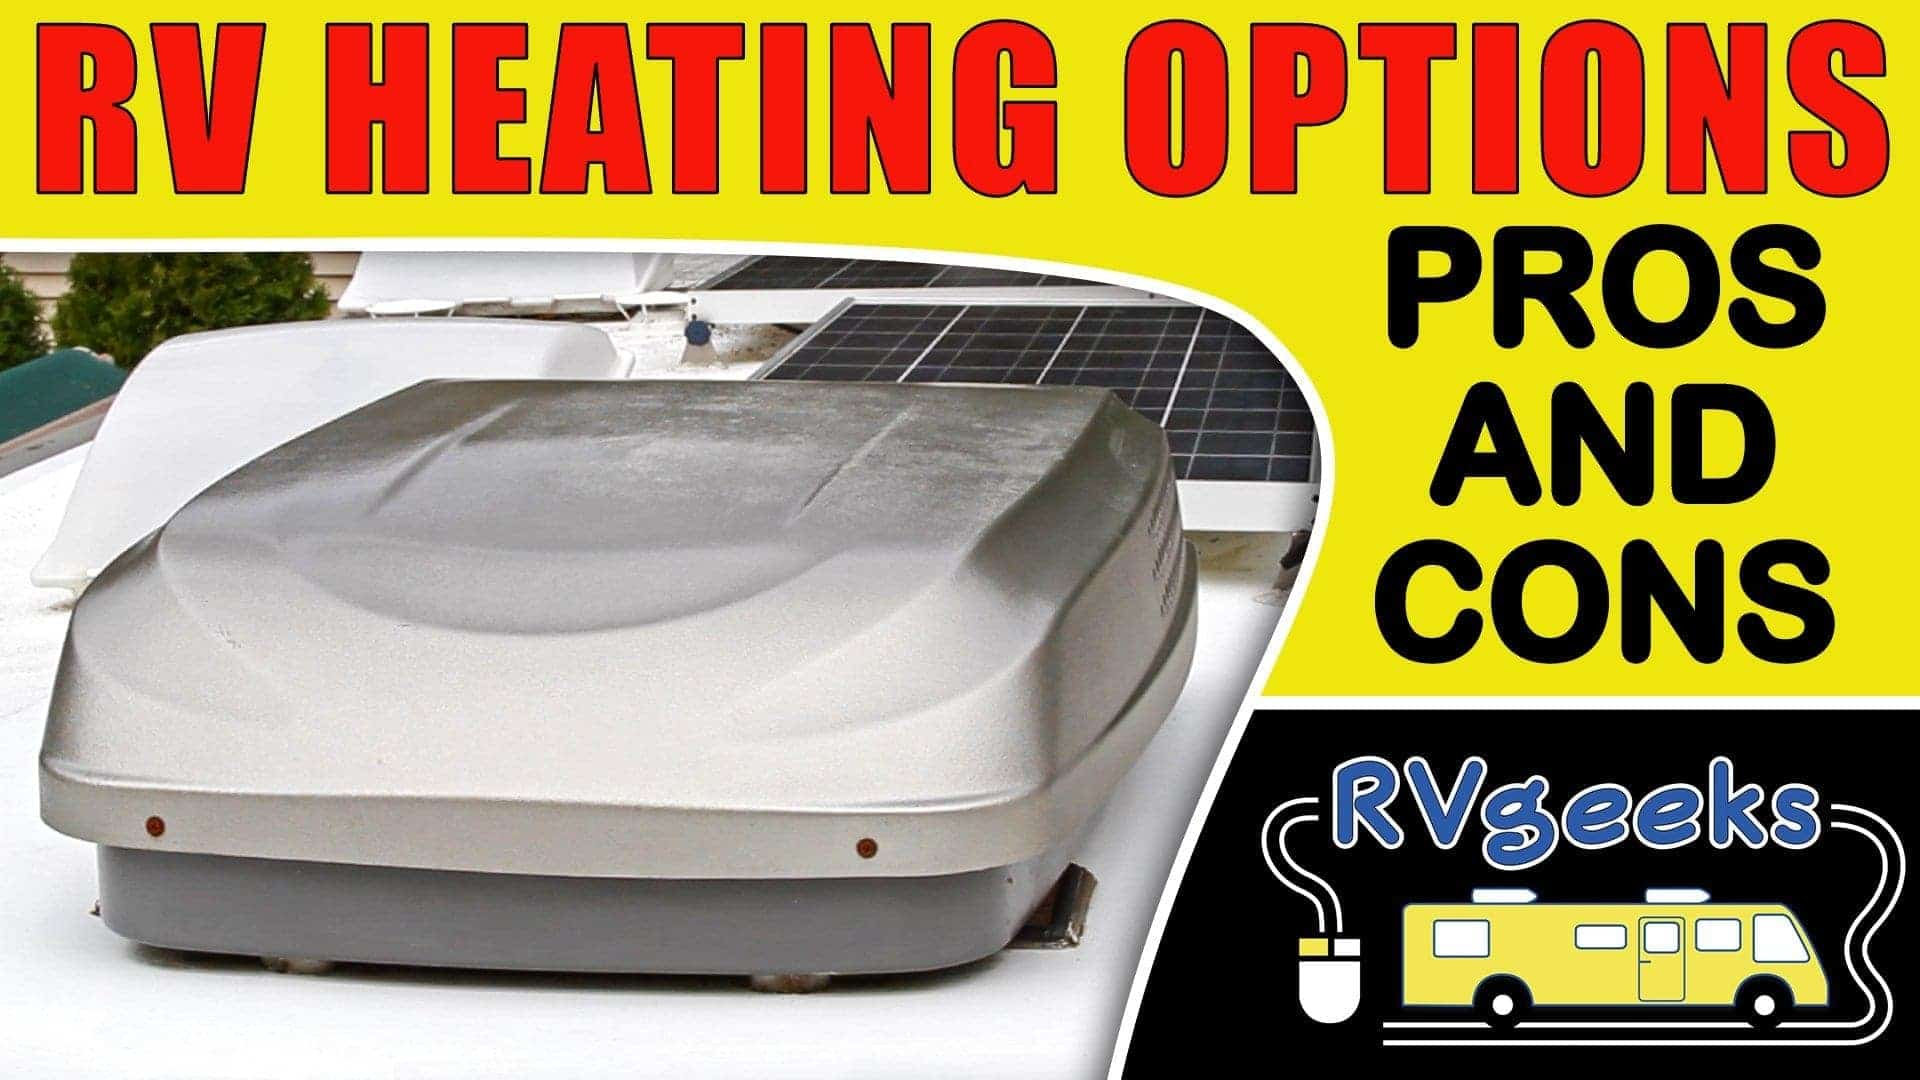 Furnaces, Heat Pumps & Space Heaters. Oh My!  The Pros & Cons of RV Heat.